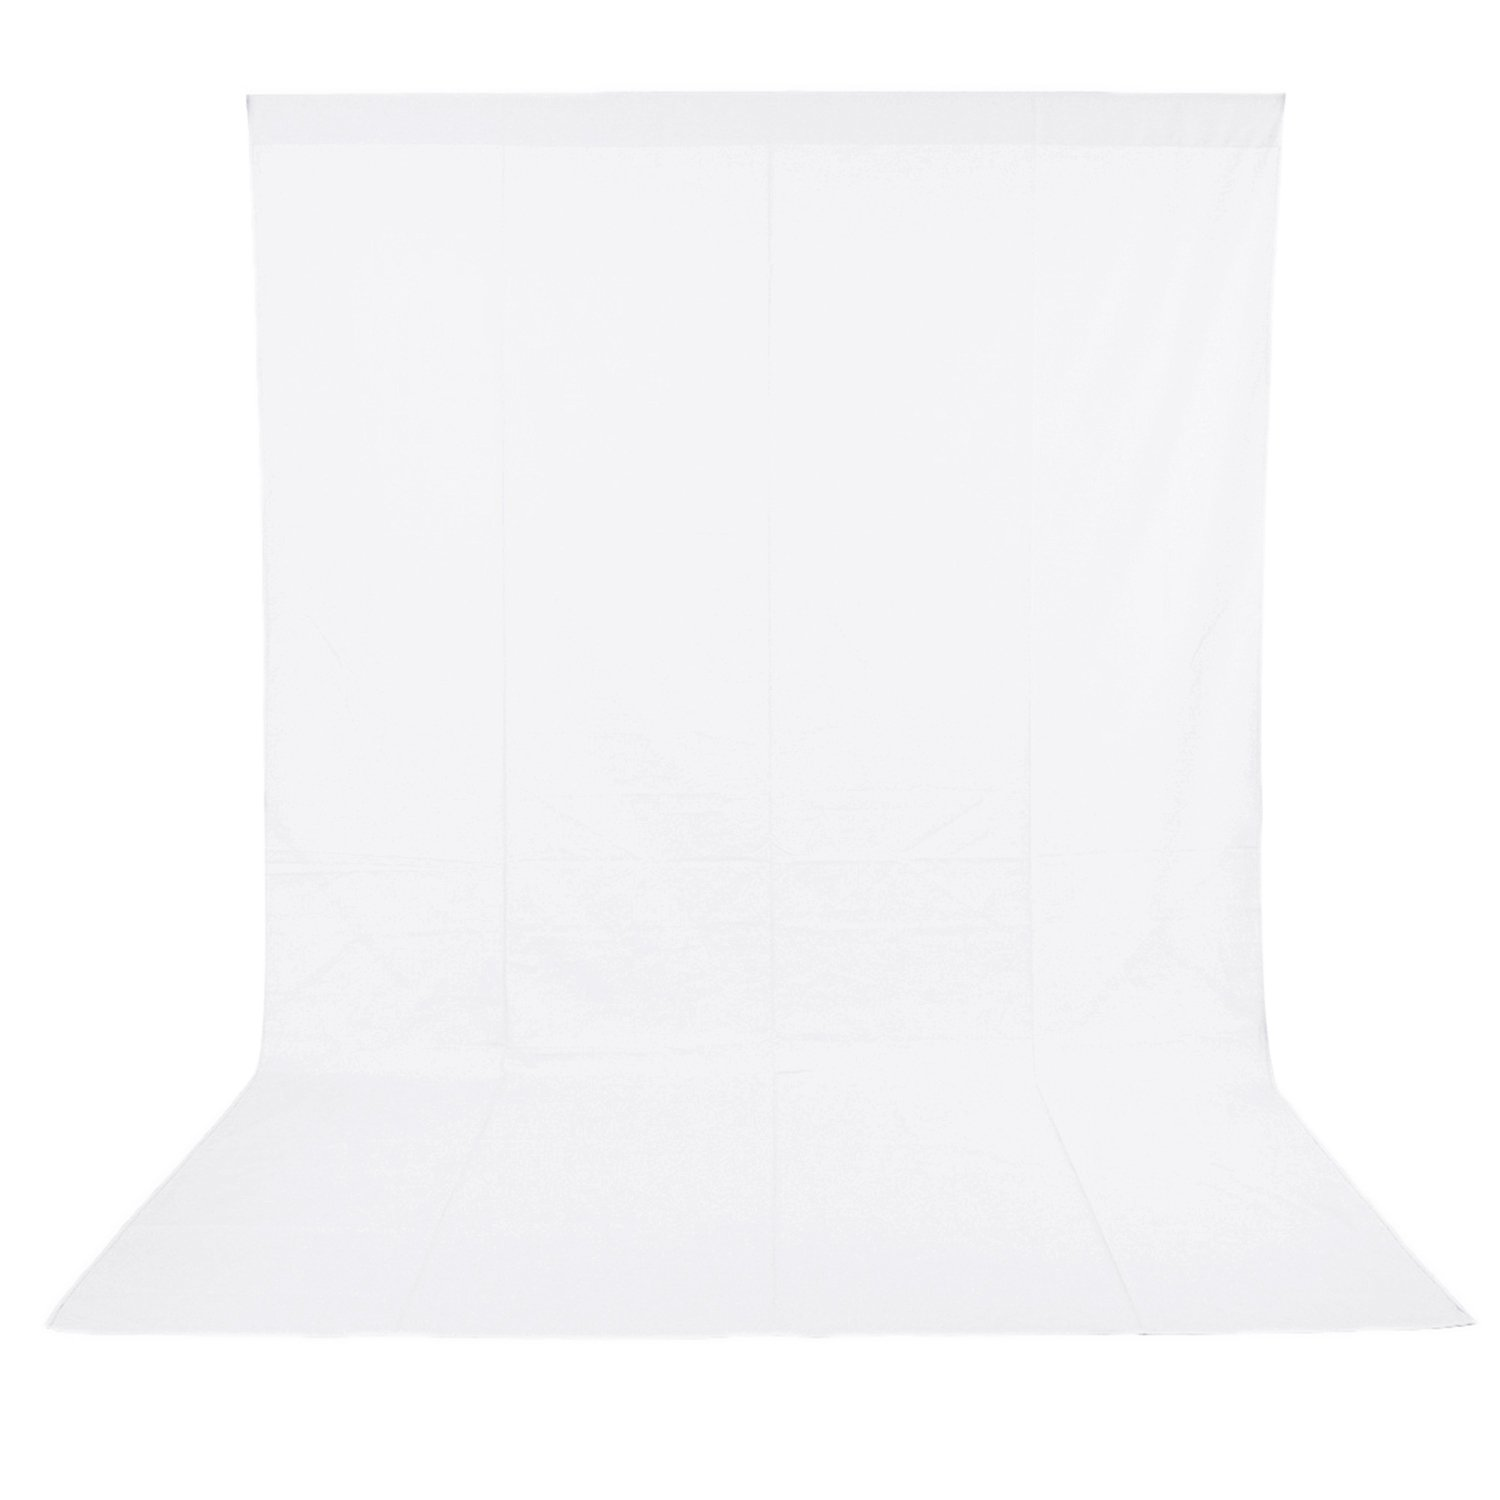 Neewer 6 x 9FT/1.8 x 2.8M PRO Photo Studio 100% Pure Muslin Collapsible Backdrop Background for Photography,Video and Television (Background Only) - White